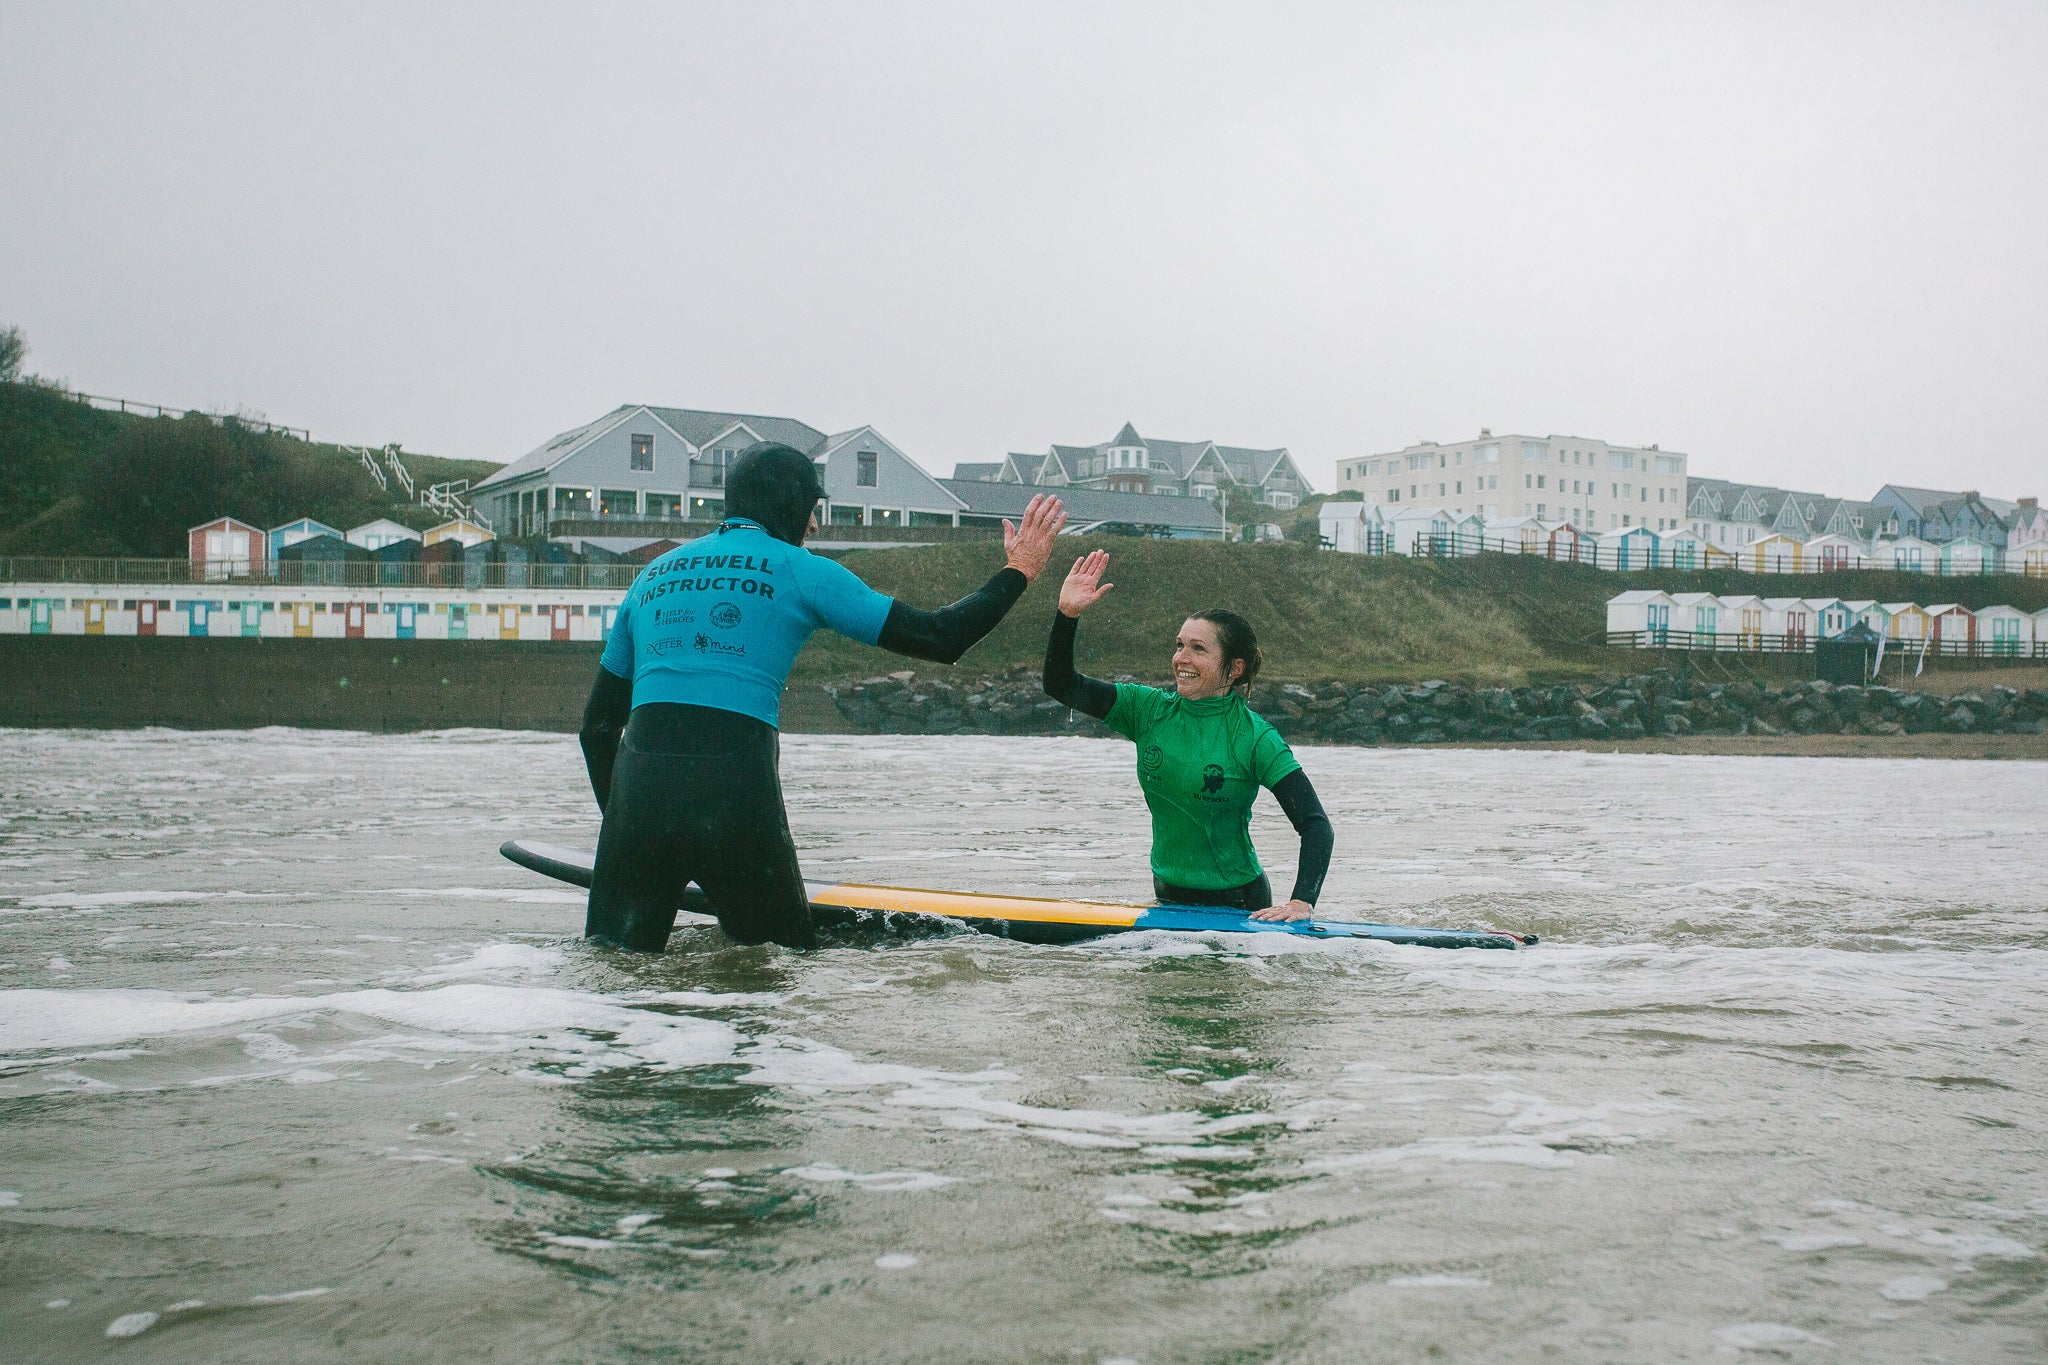 Surfwell participant and a surf therapy instructor giving each other a high-five in the water